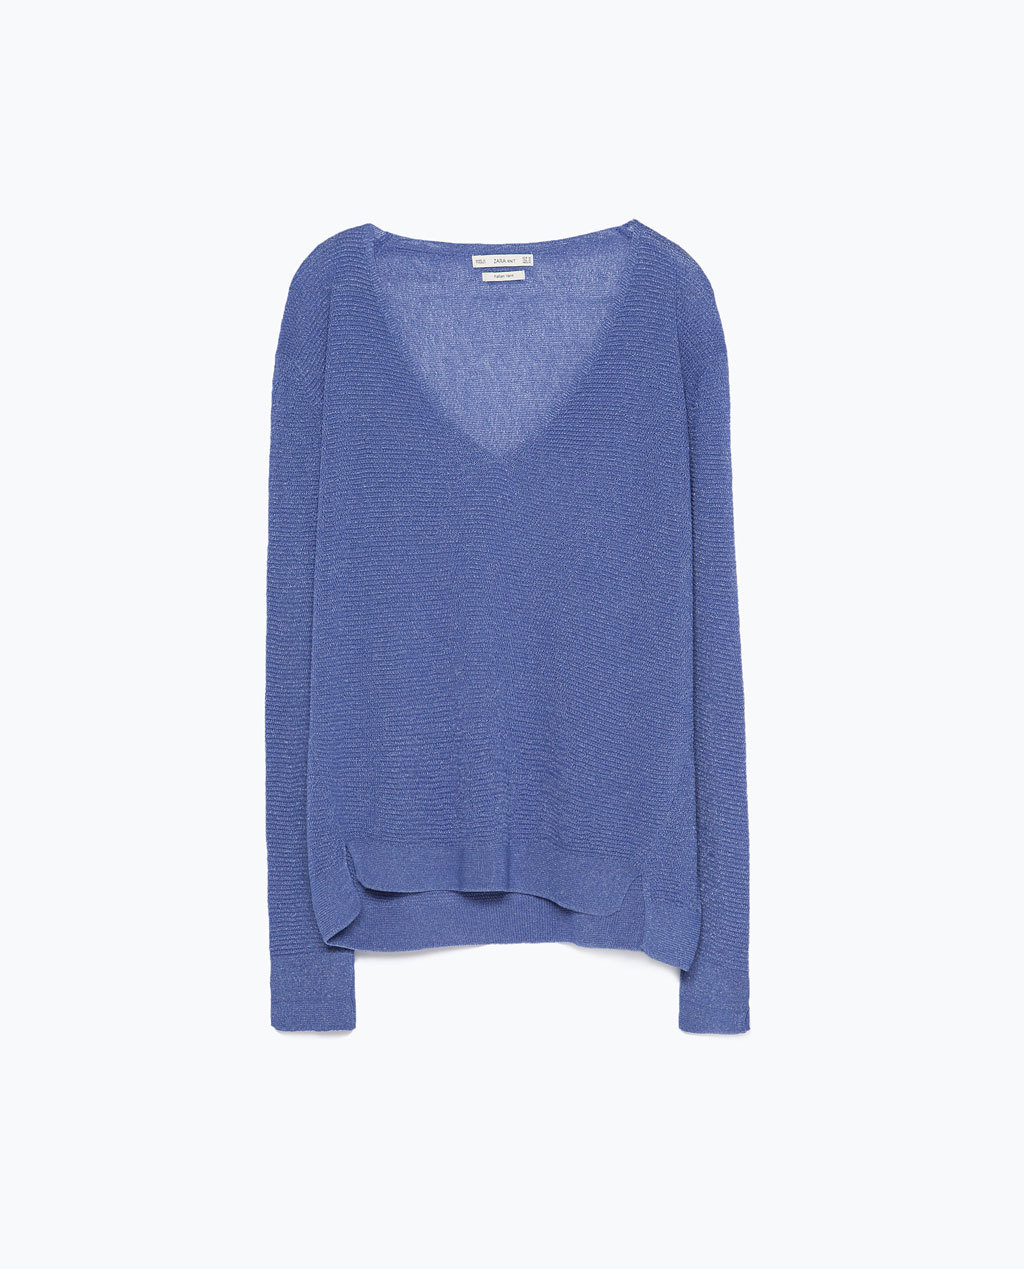 V Neck Jumper - neckline: low v-neck; pattern: plain; length: below the bottom; style: standard; predominant colour: diva blue; occasions: casual; fit: loose; sleeve length: long sleeve; sleeve style: standard; texture group: knits/crochet; pattern type: knitted - other; fibres: viscose/rayon - mix; season: s/s 2015; wardrobe: highlight